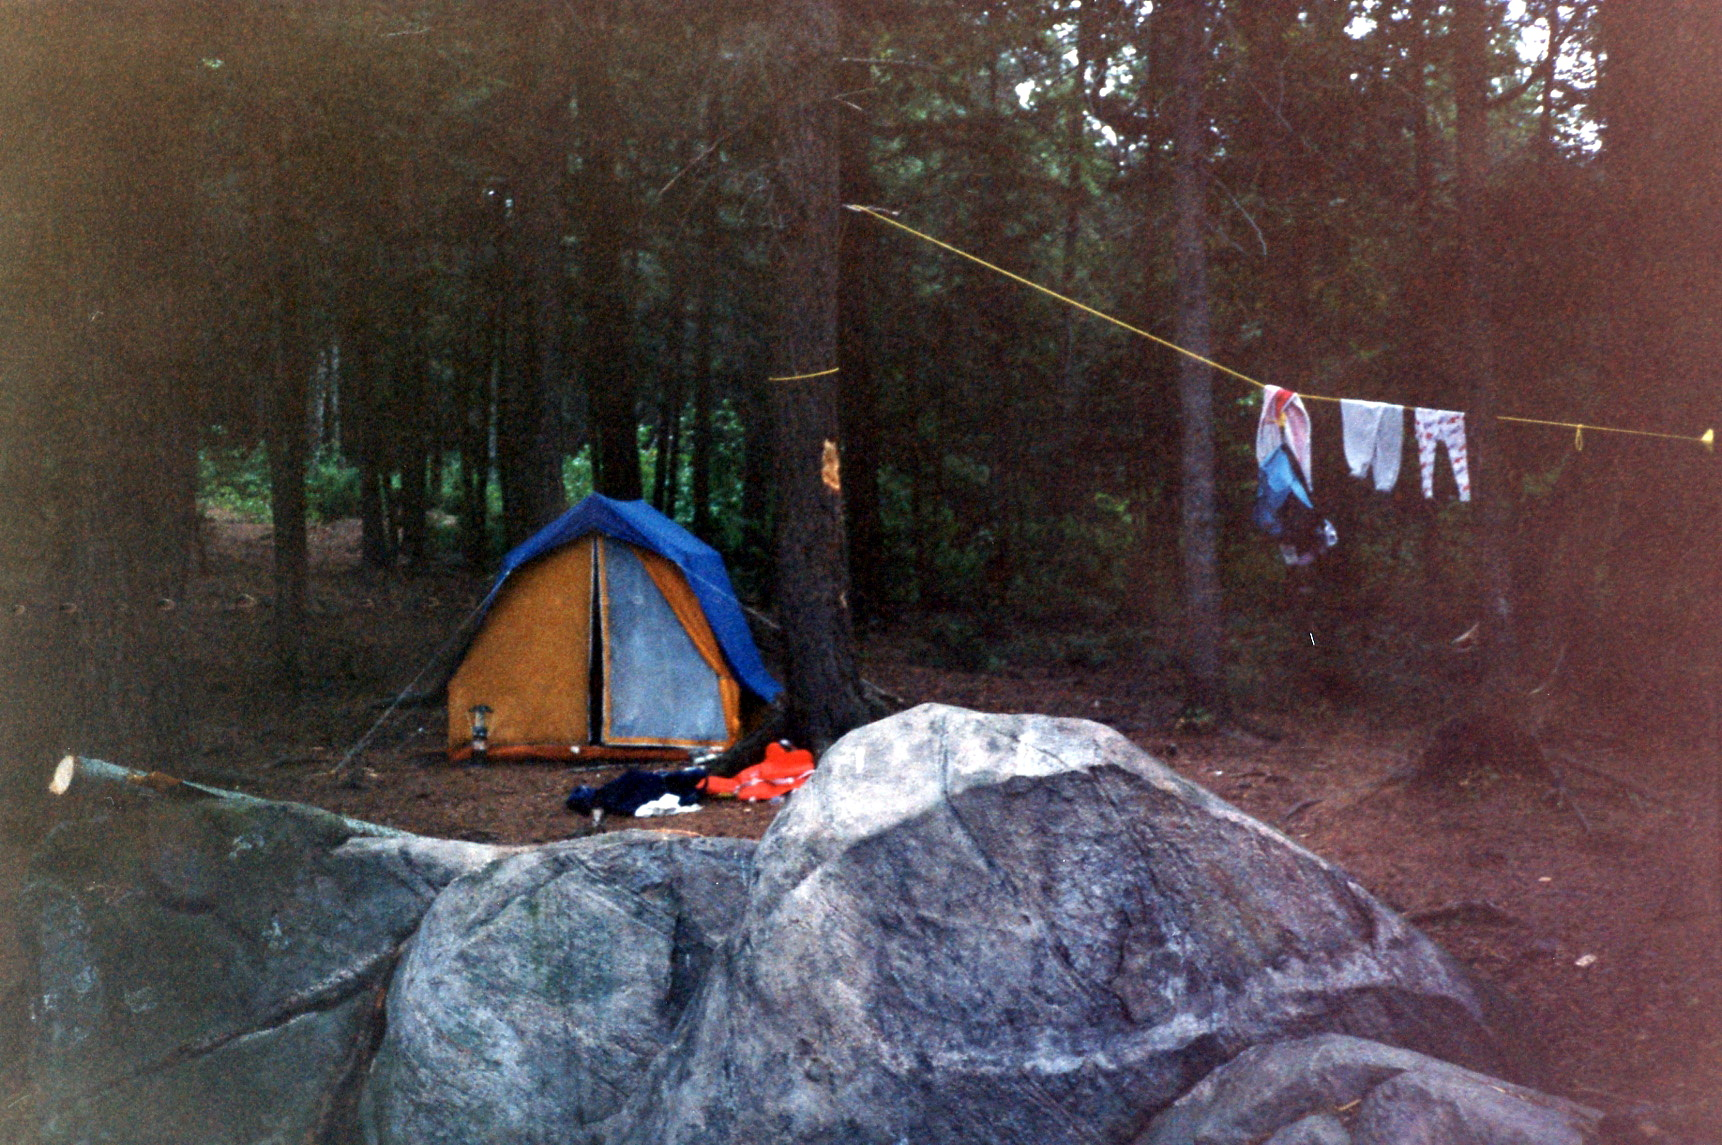 The 4-man canvas barn tent set up on the island campsite